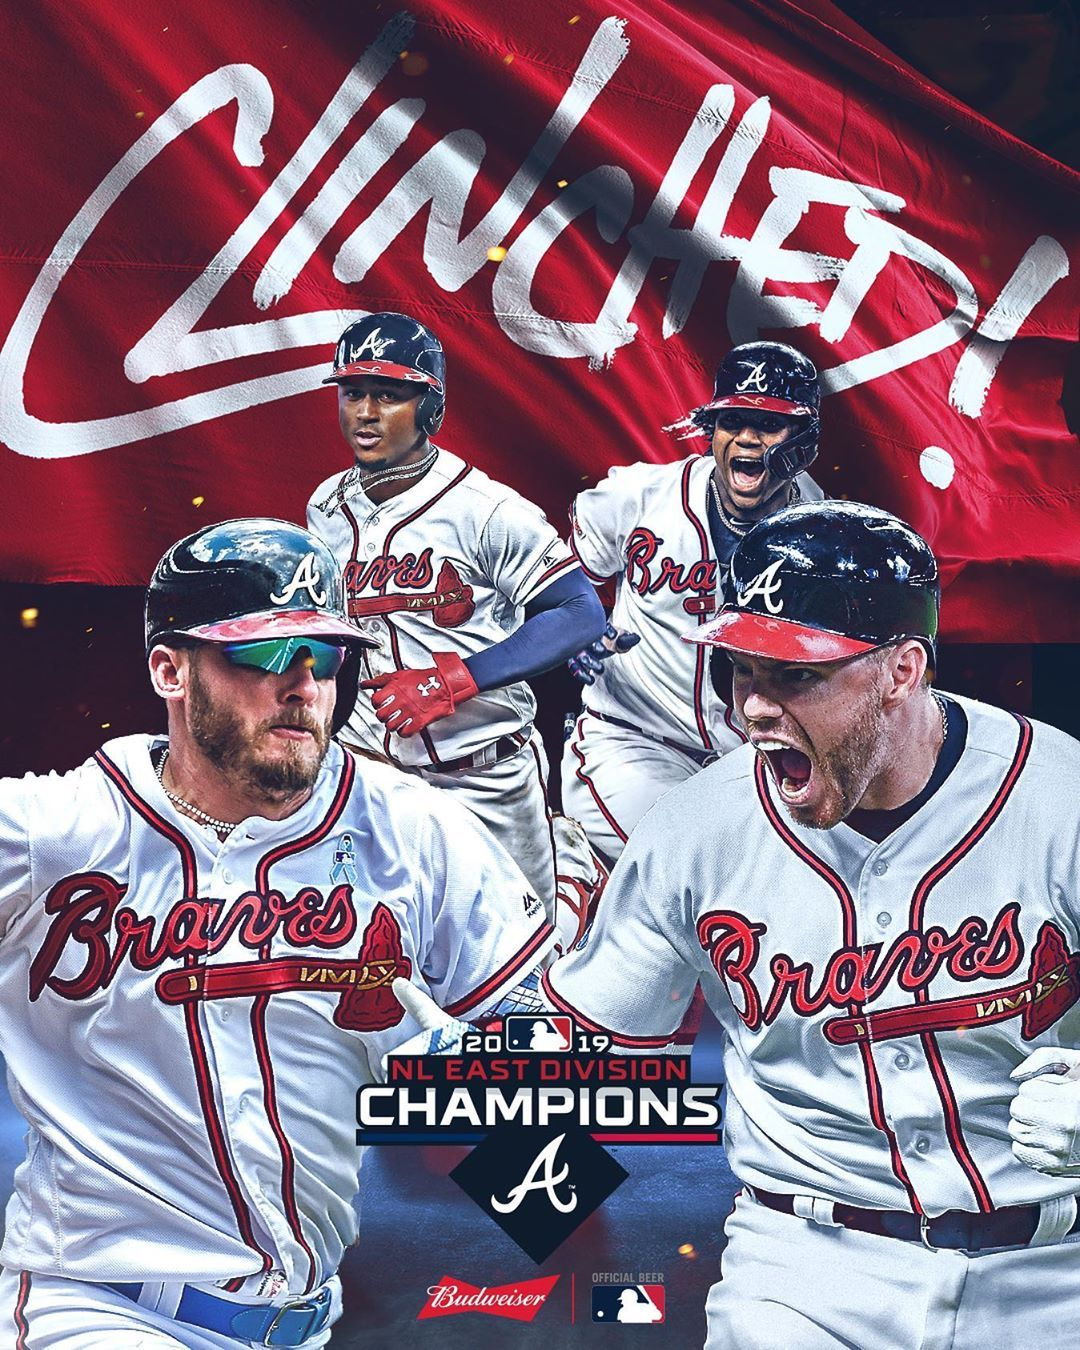 Mlb Back To Back The Braves Reign Supreme In The Nl East Clinched Baseball Big4 Bigfour Big4 Braves Atlanta Braves Baseball Atlanta Braves